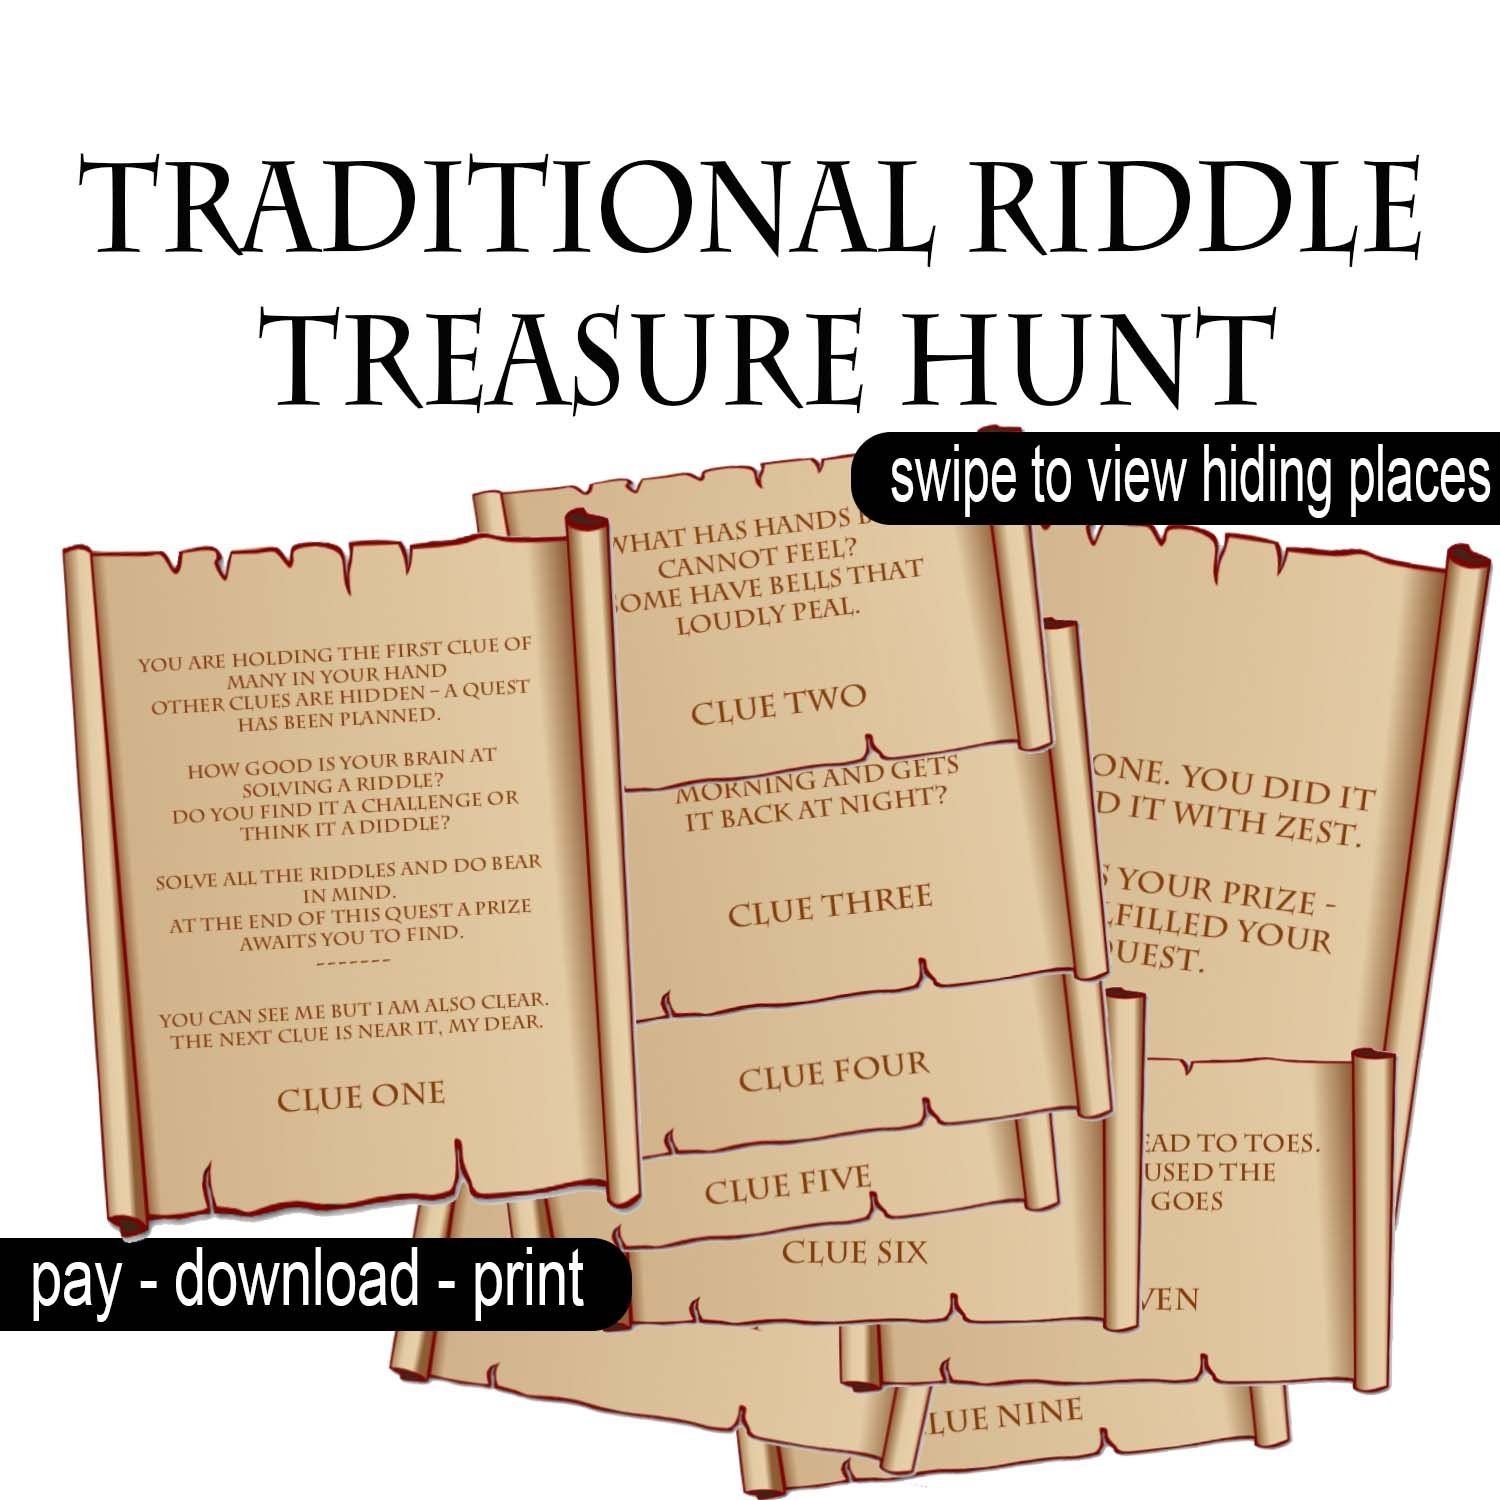 Christmas Gift Scavenger Hunt Riddles: Traditional Riddle Treasure Hunt Clues Printable